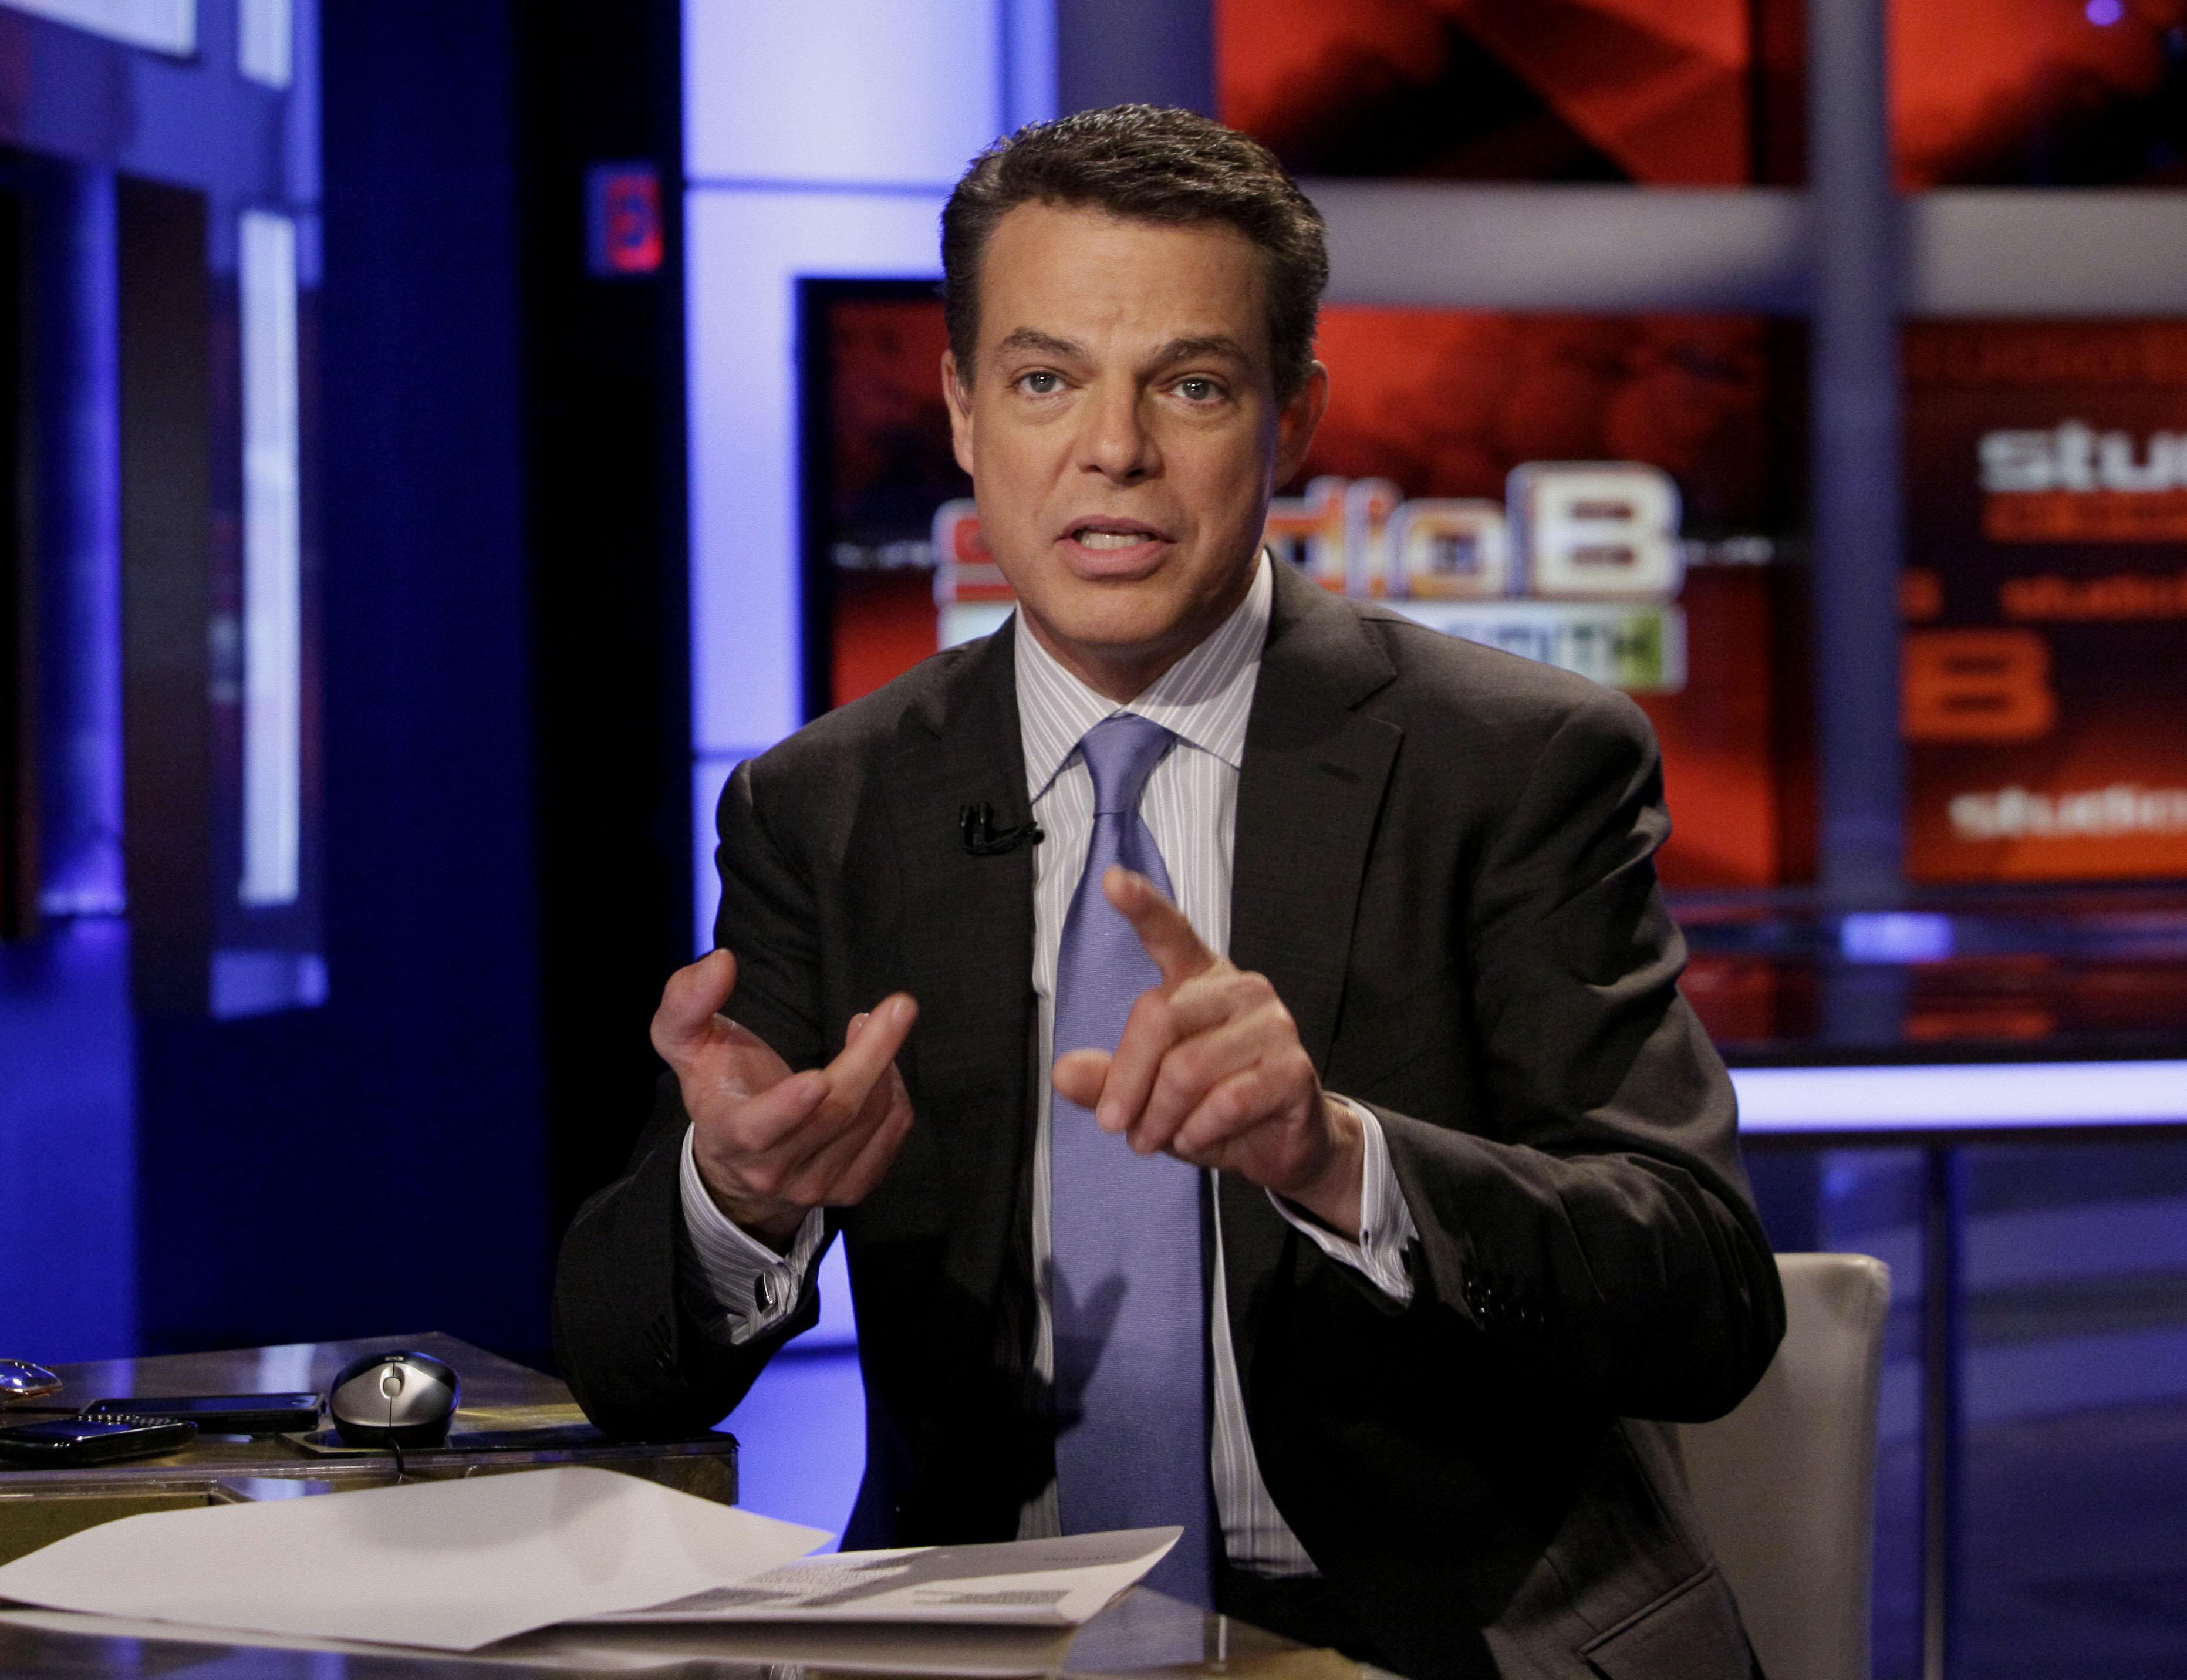 Shepard Smith, Fox News host, blasts White House for offering 'lie after lie' about Russian ties – Washington Times